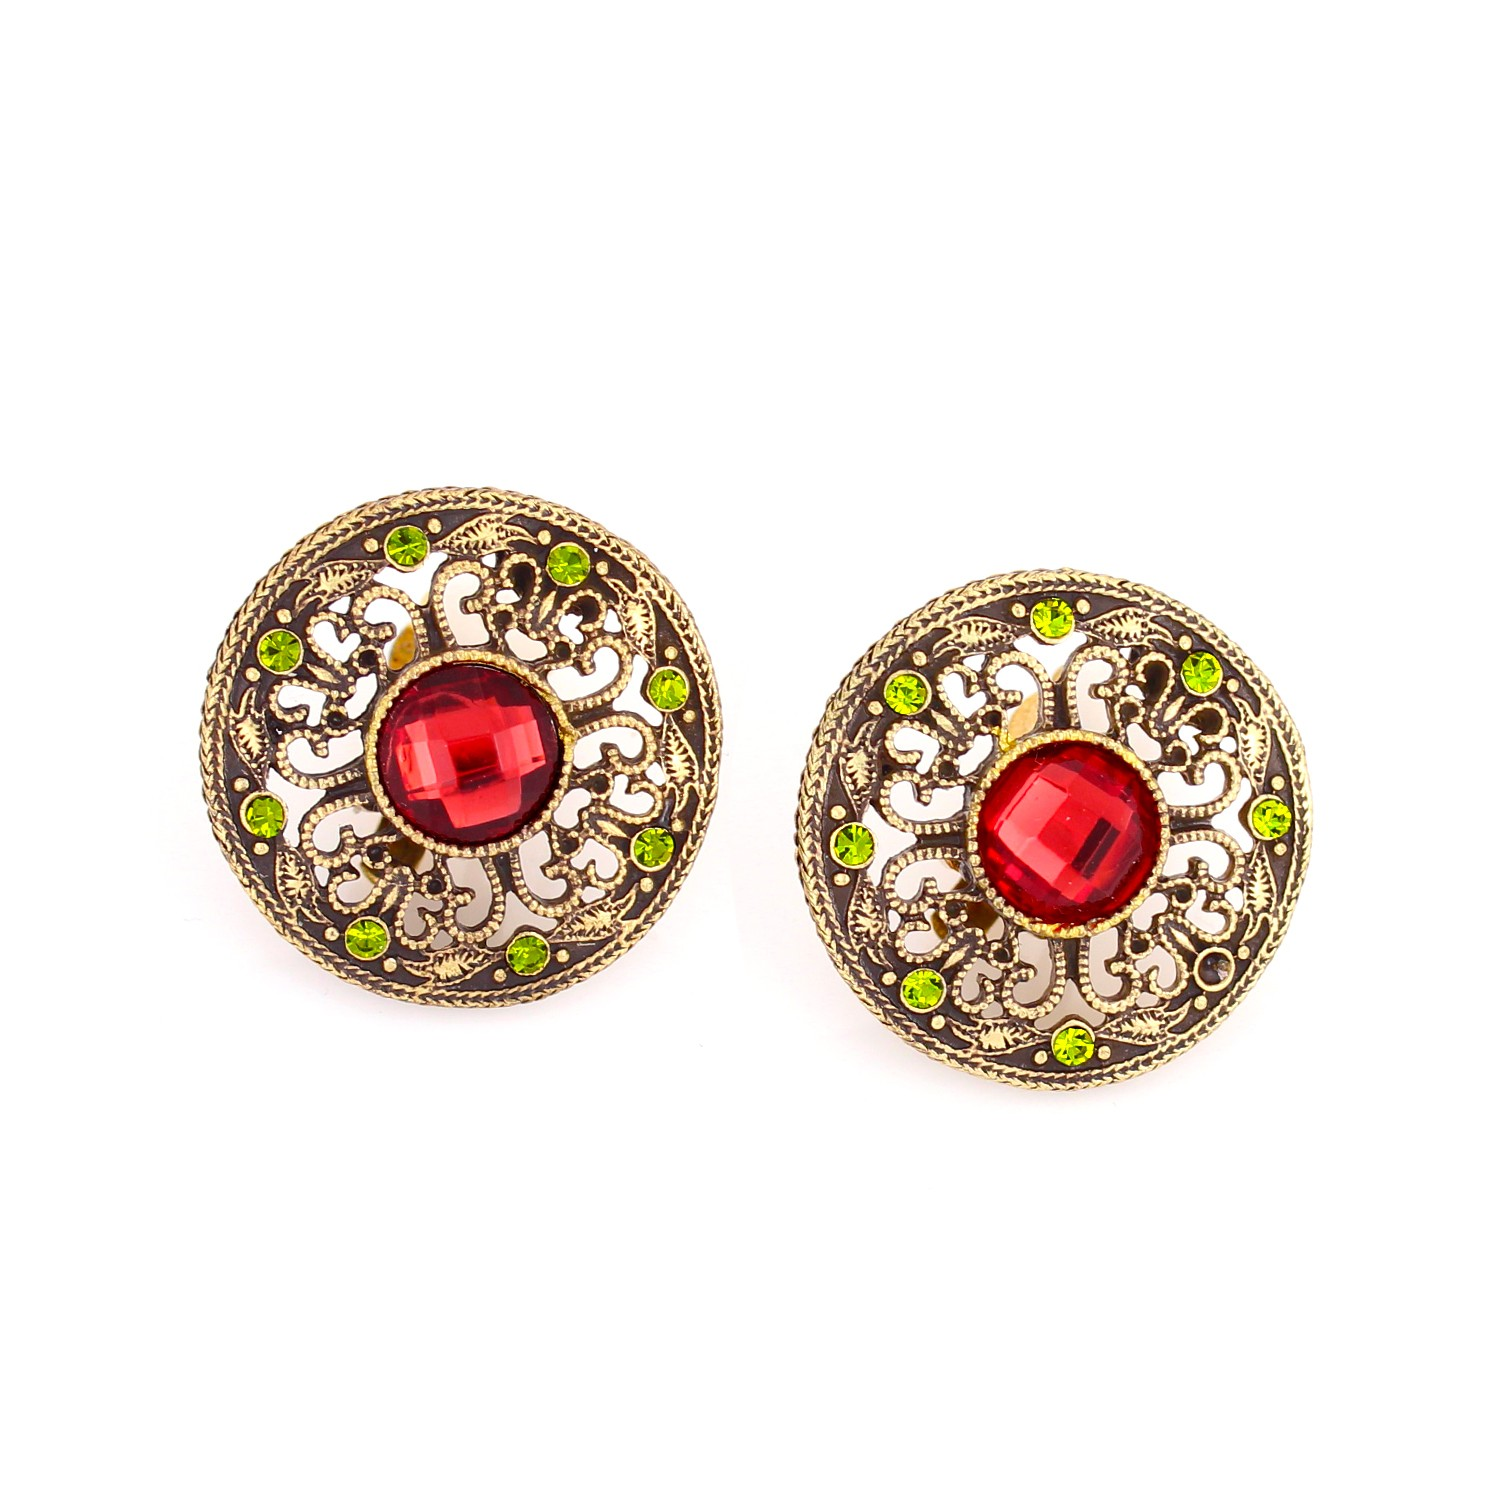 TAZZA WOMEN'S GOLD RED CRYSTAL CLIP ON EARRINGS